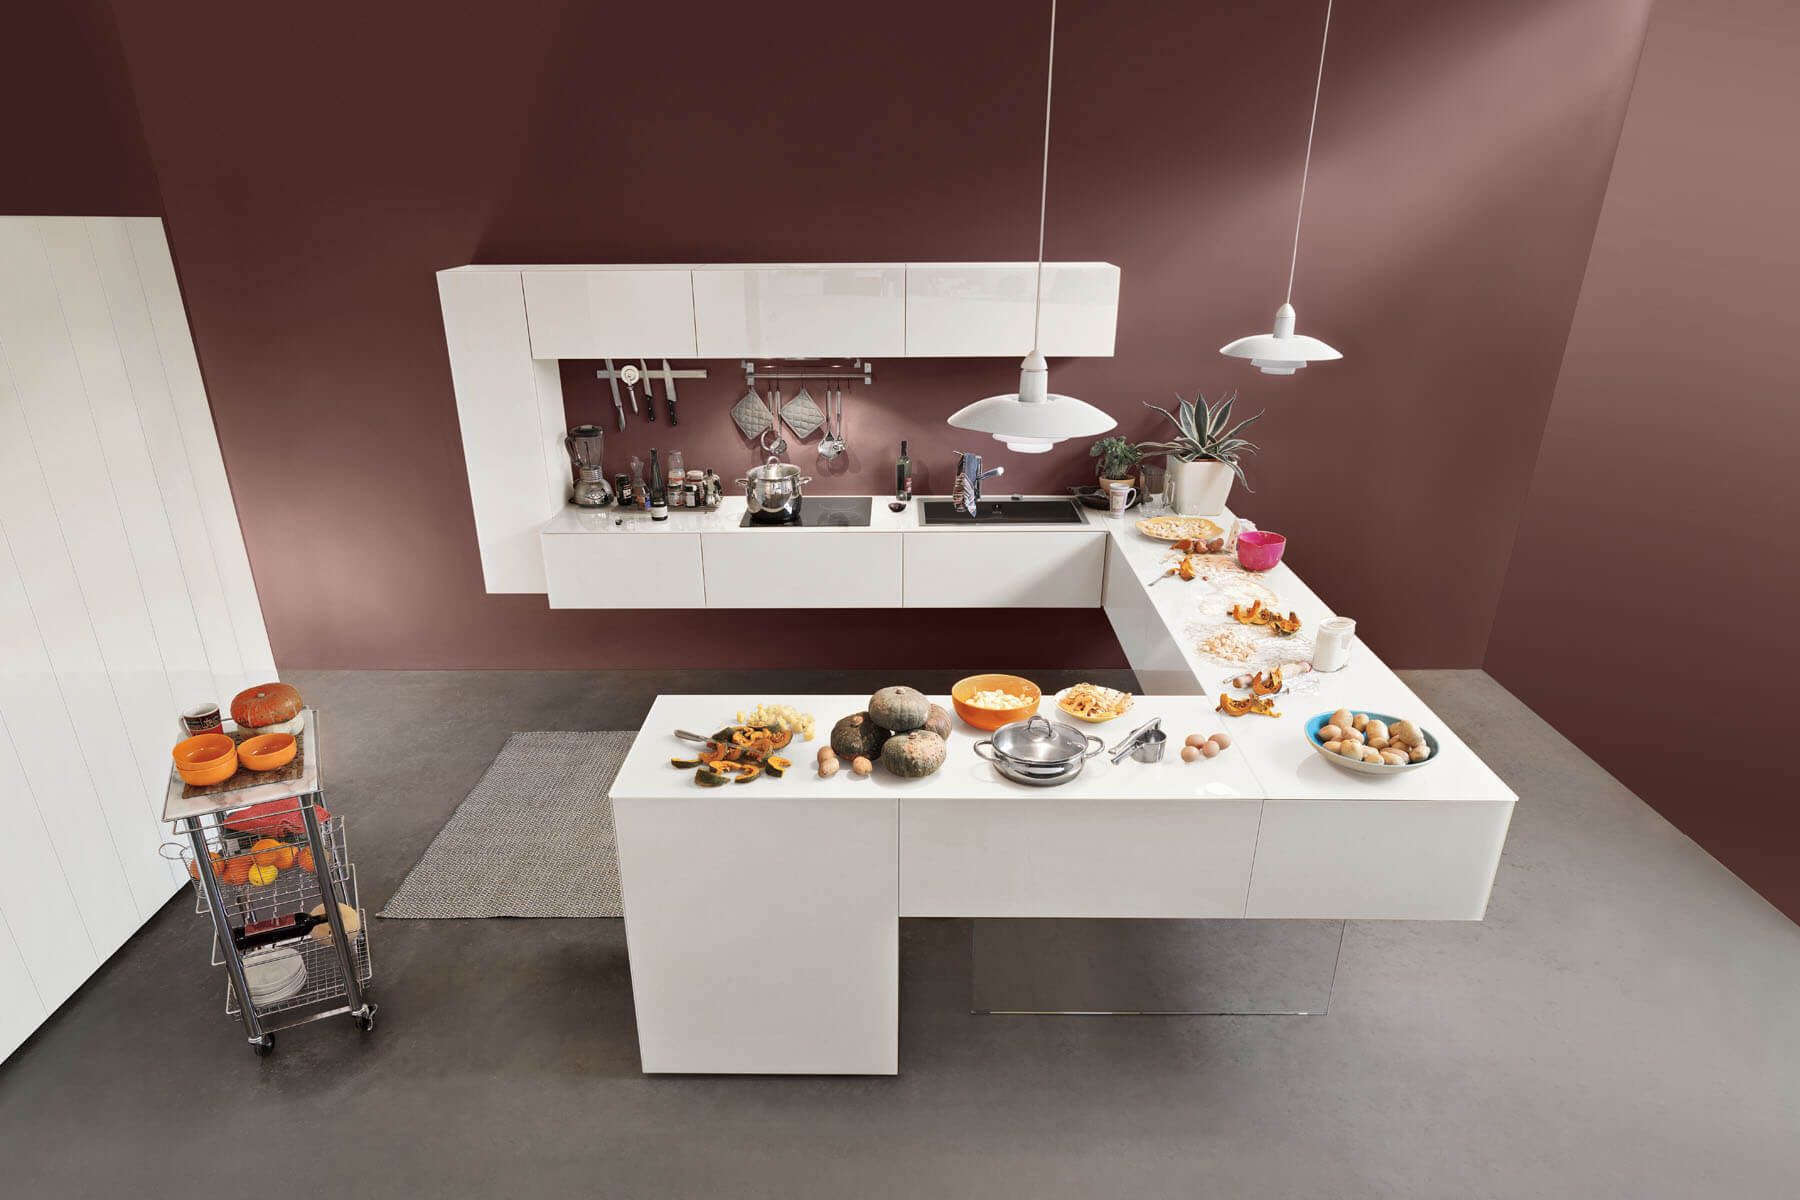 Come Progettare Una Cucina Componibile. Le Colonne Pocket Integrano ...